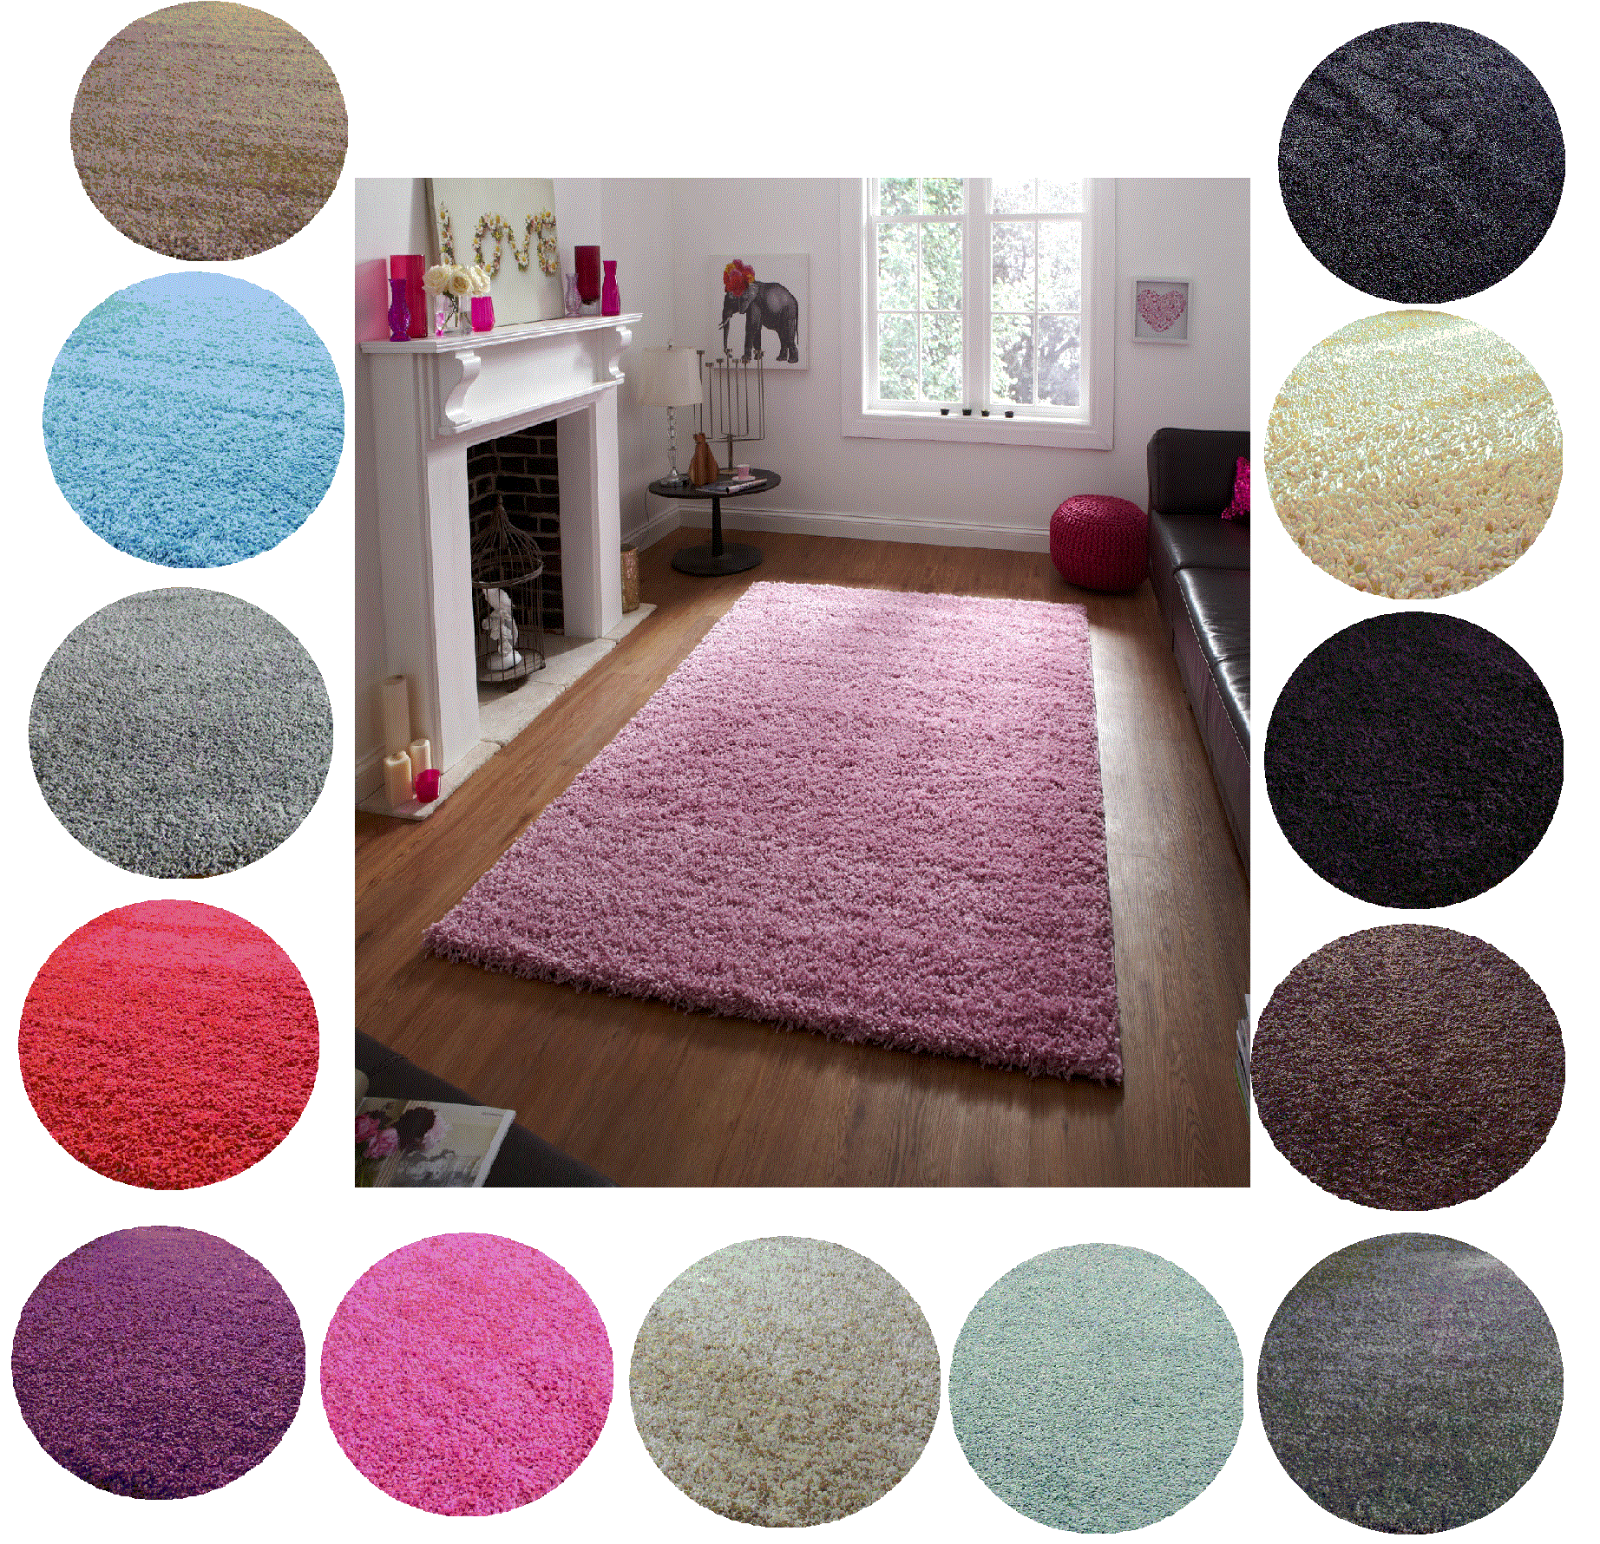 SHAGGY RUG 5cm HIGH PILE SMALL EXTRA LARGE THICK SOFT LIVING ROOM FLOOR BEDROOM 2